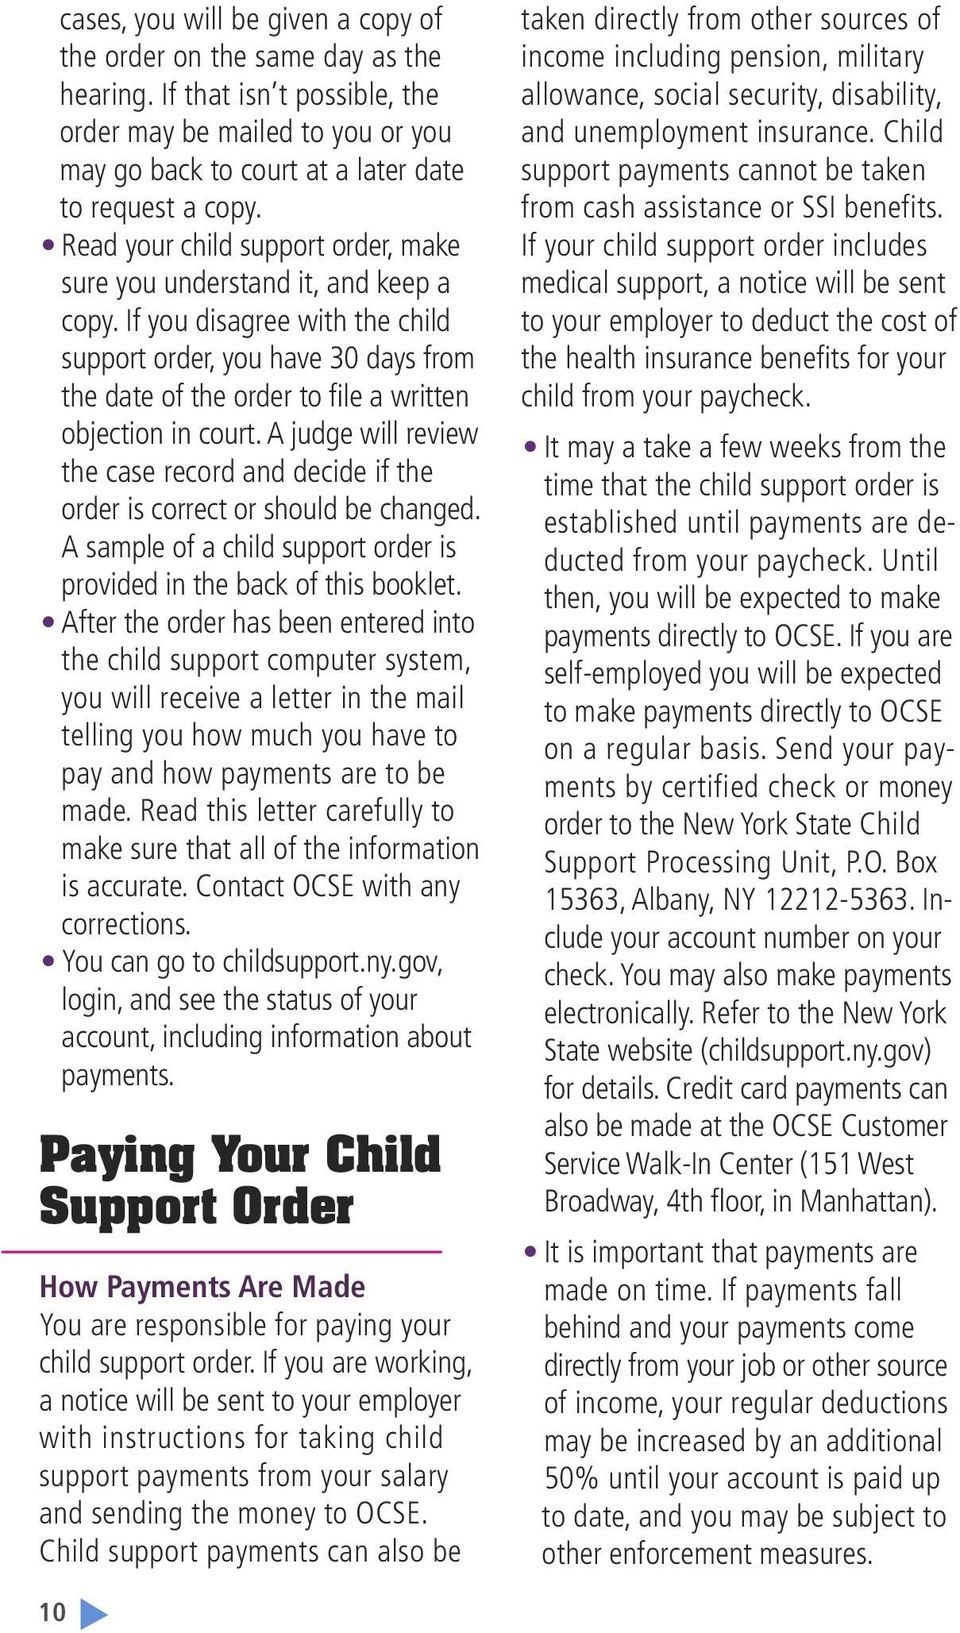 If you disagree with the child support order, you have 30 days from the date of the order to file a written objection in court.